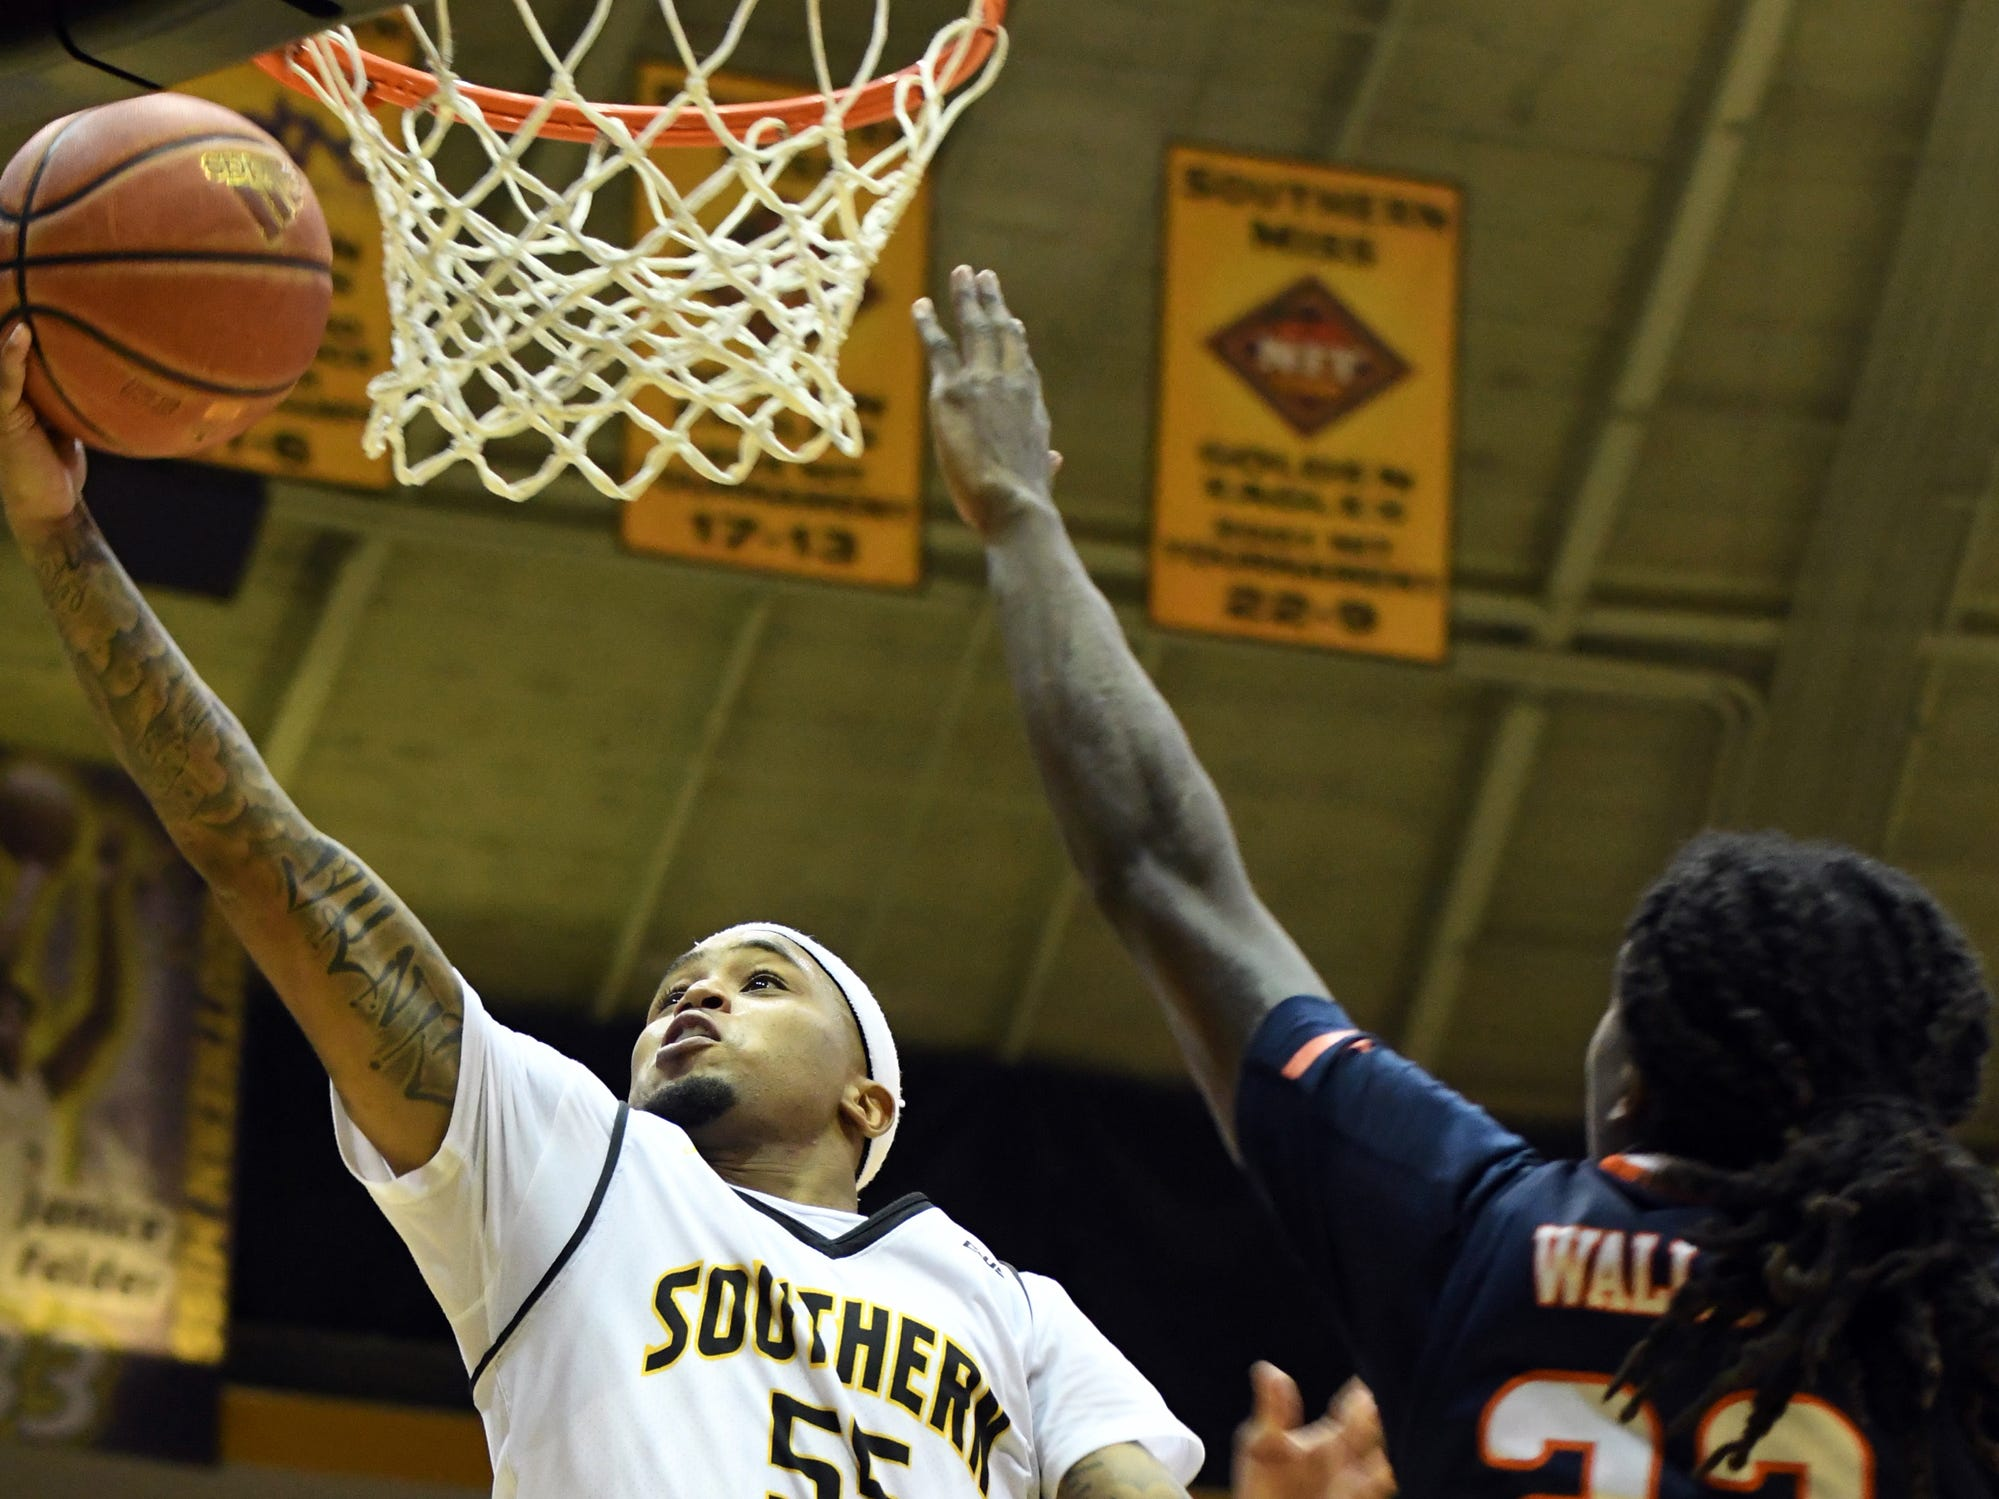 Southern Miss guard Tyree Griffin reaches for the basket  in a game against UTSA in Reed Green Coliseum on Saturday, March 9, 2019.